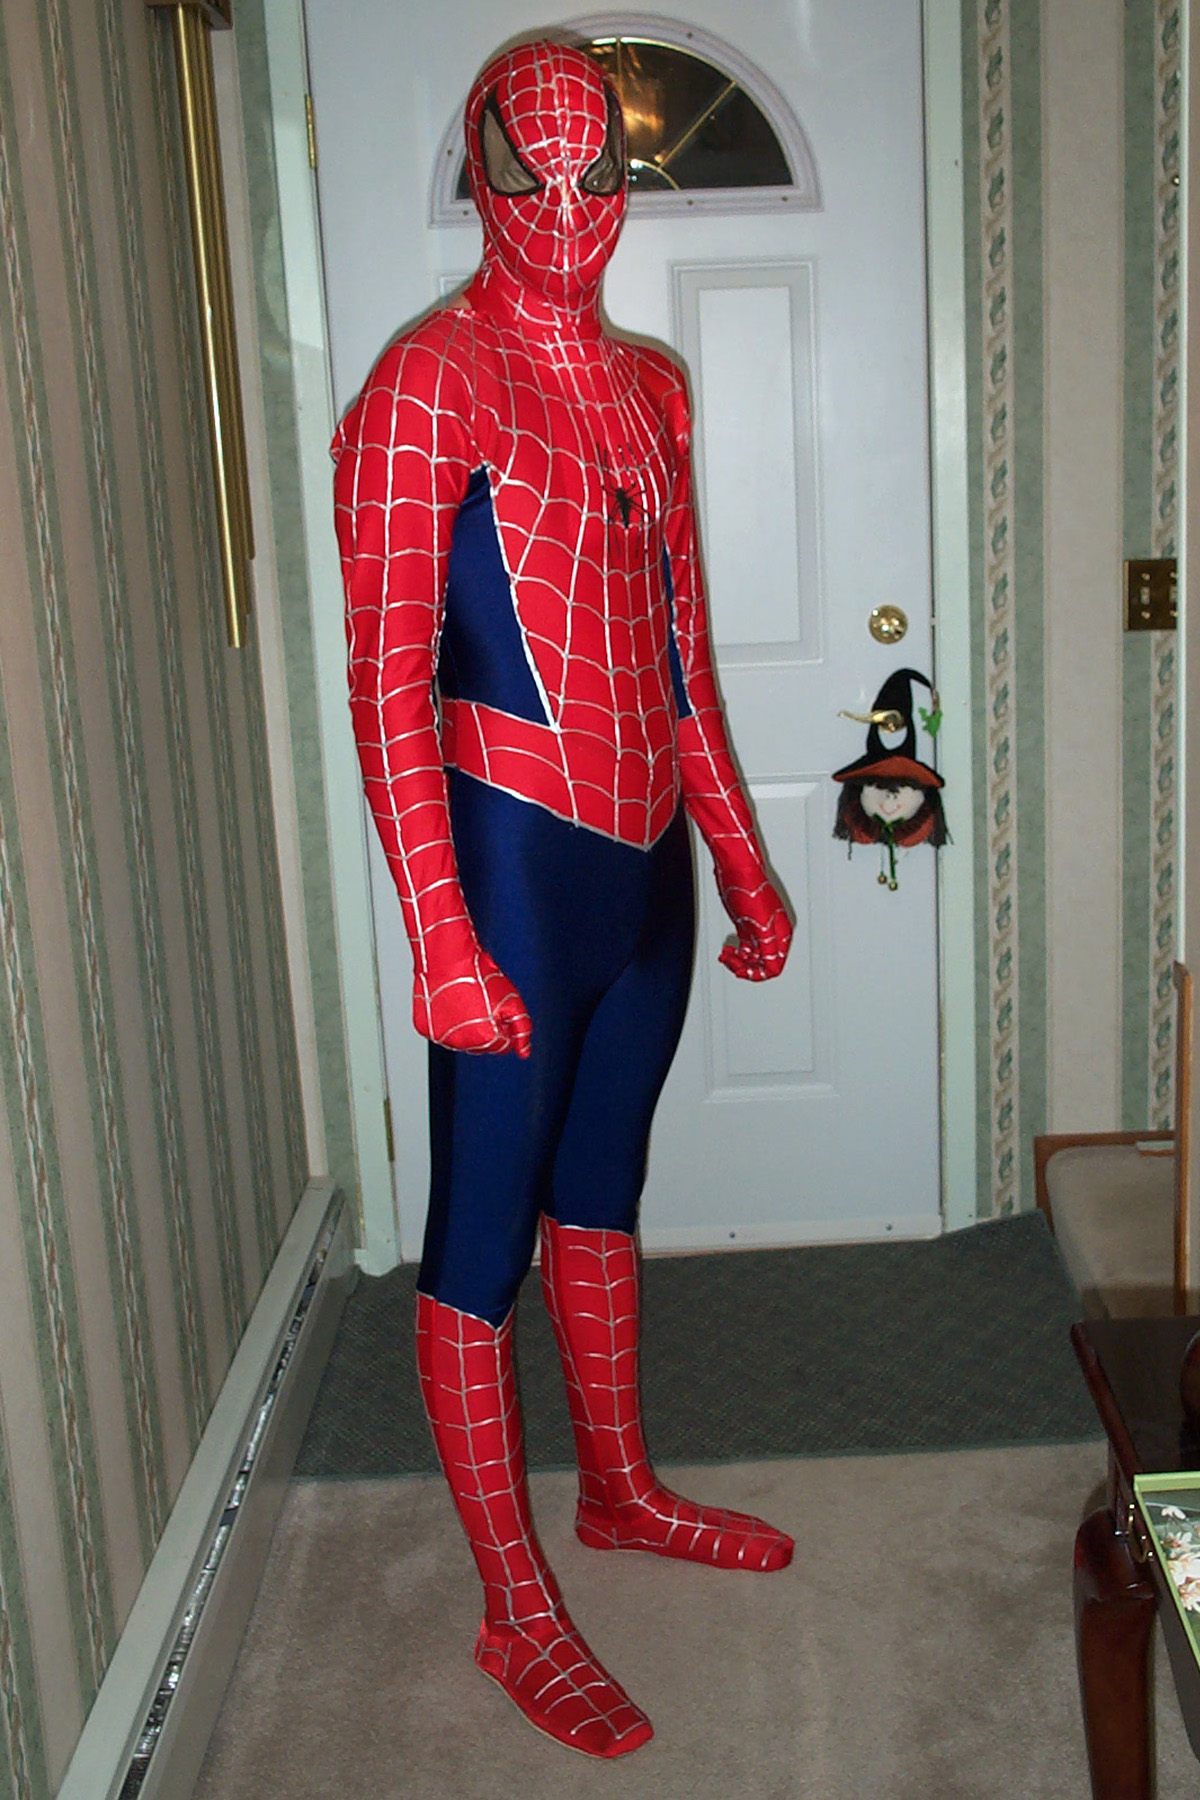 A man standing in a hallway, wearing a Spiderman costume.